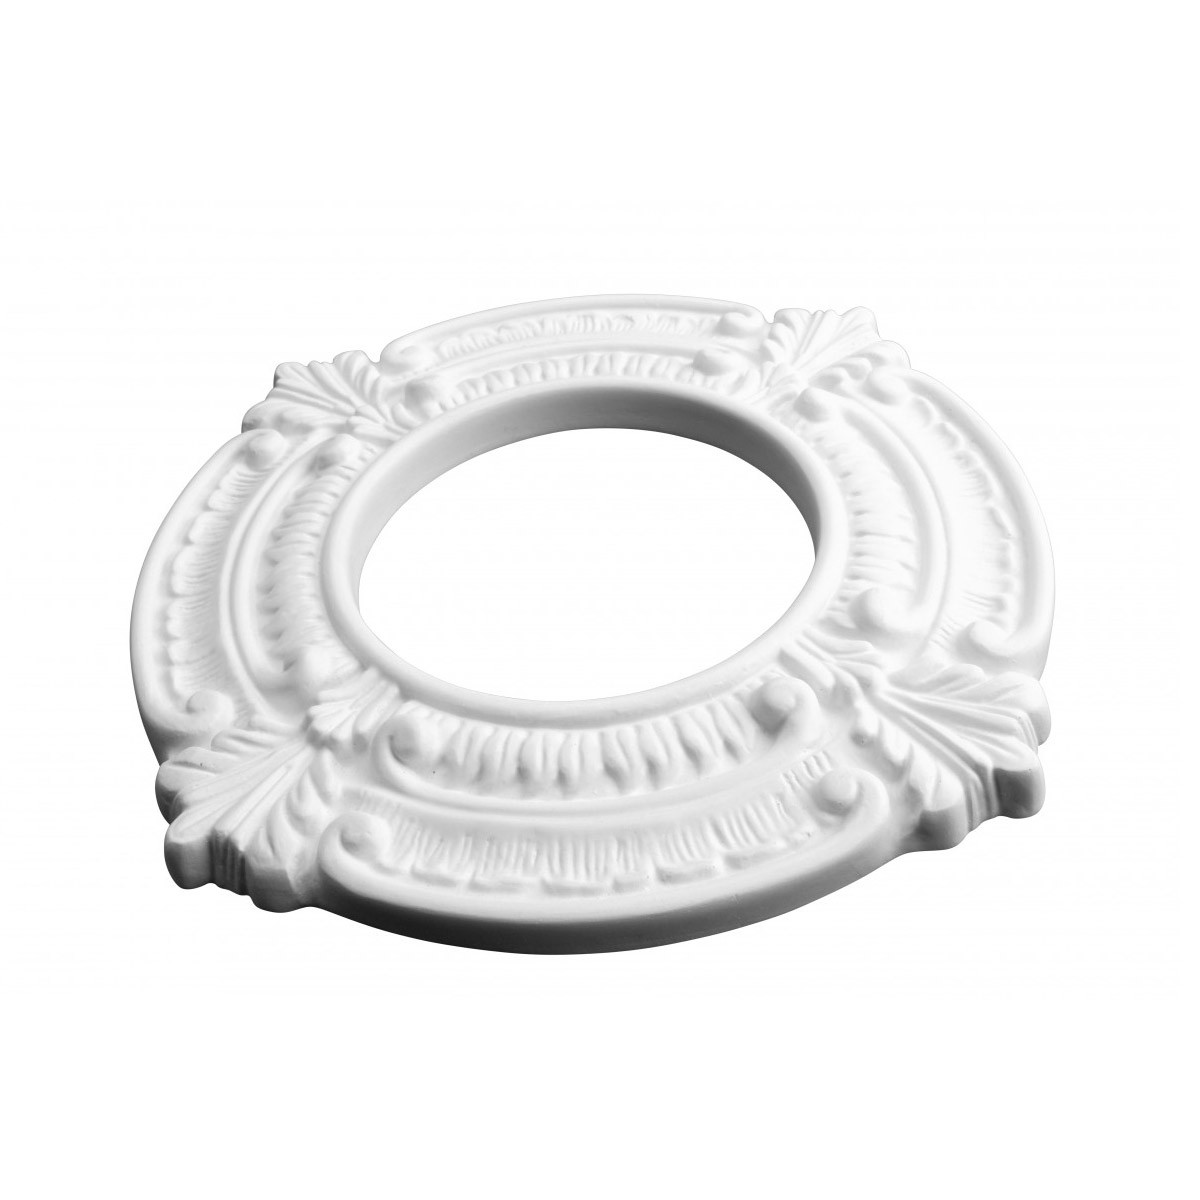 Recessed White Spotlight Ring 4 ID x 8 OD Factory Primed Lightweight Urethane White Recessed Light Trim Decorative Recessed Lighting Trim Spotlight Ceiling Medallion